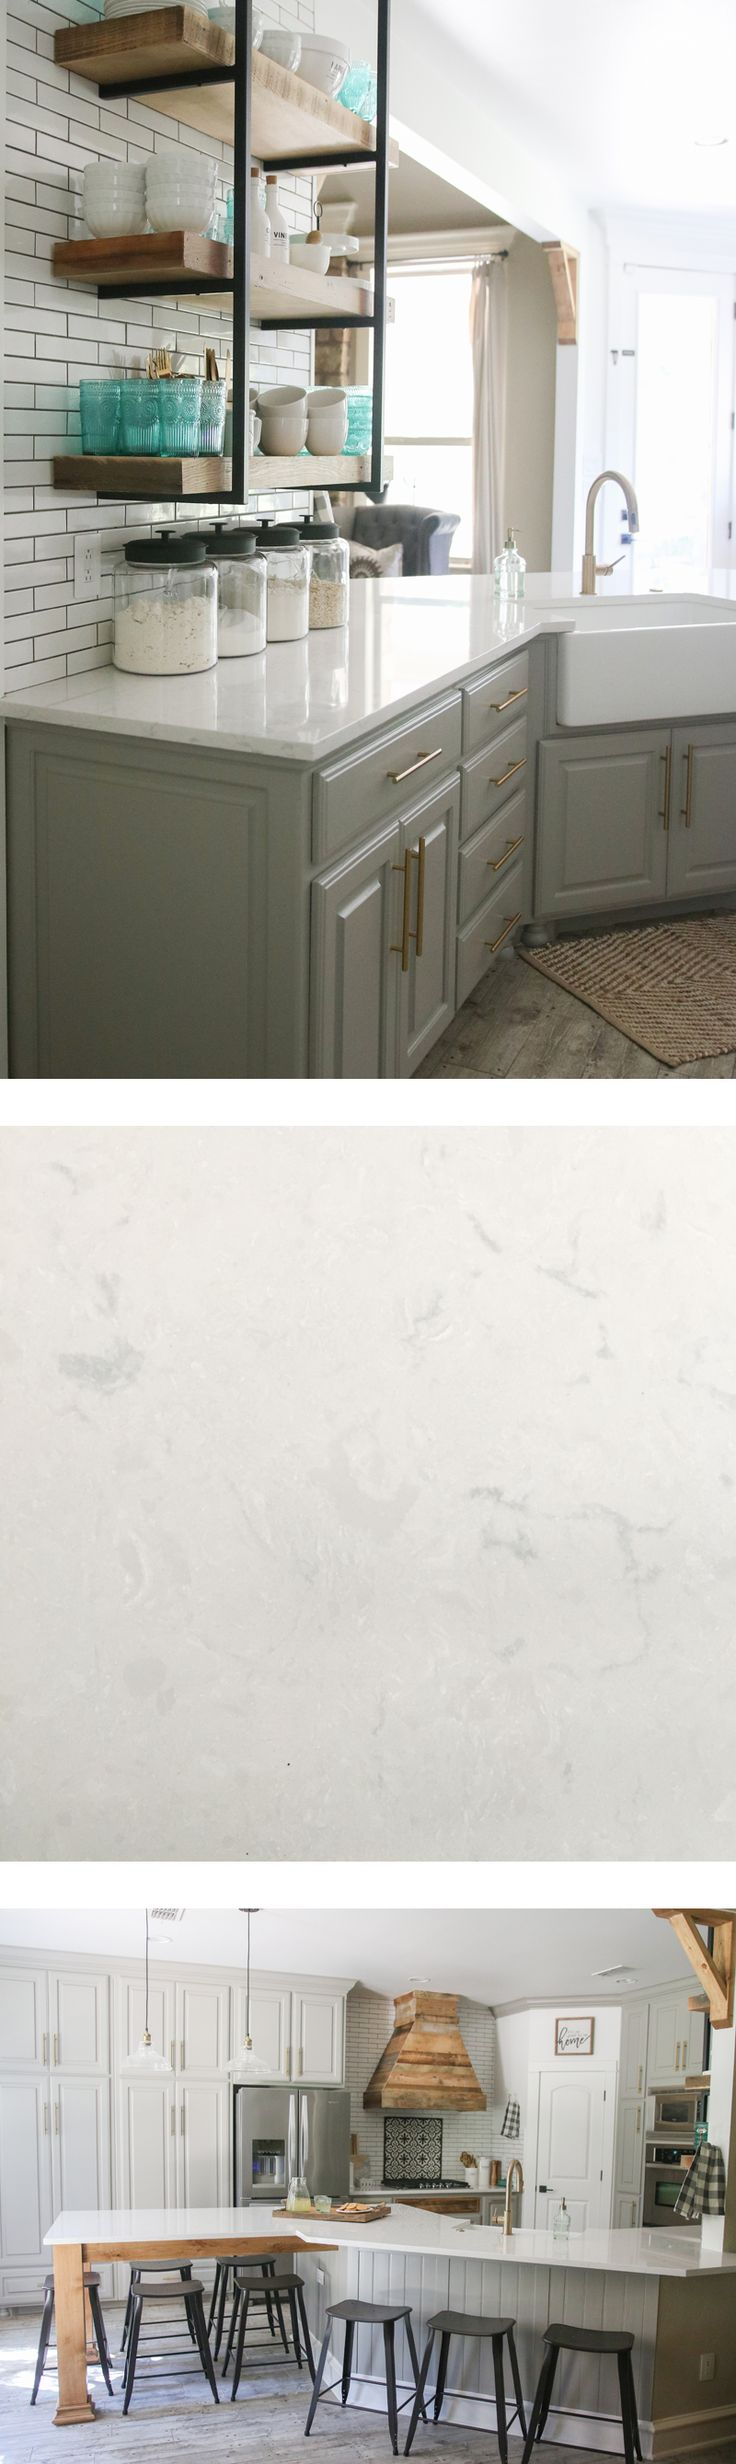 Cambria Quartz countertops in Swanbridge... Looks like marble, but nonporous and maintenance free!